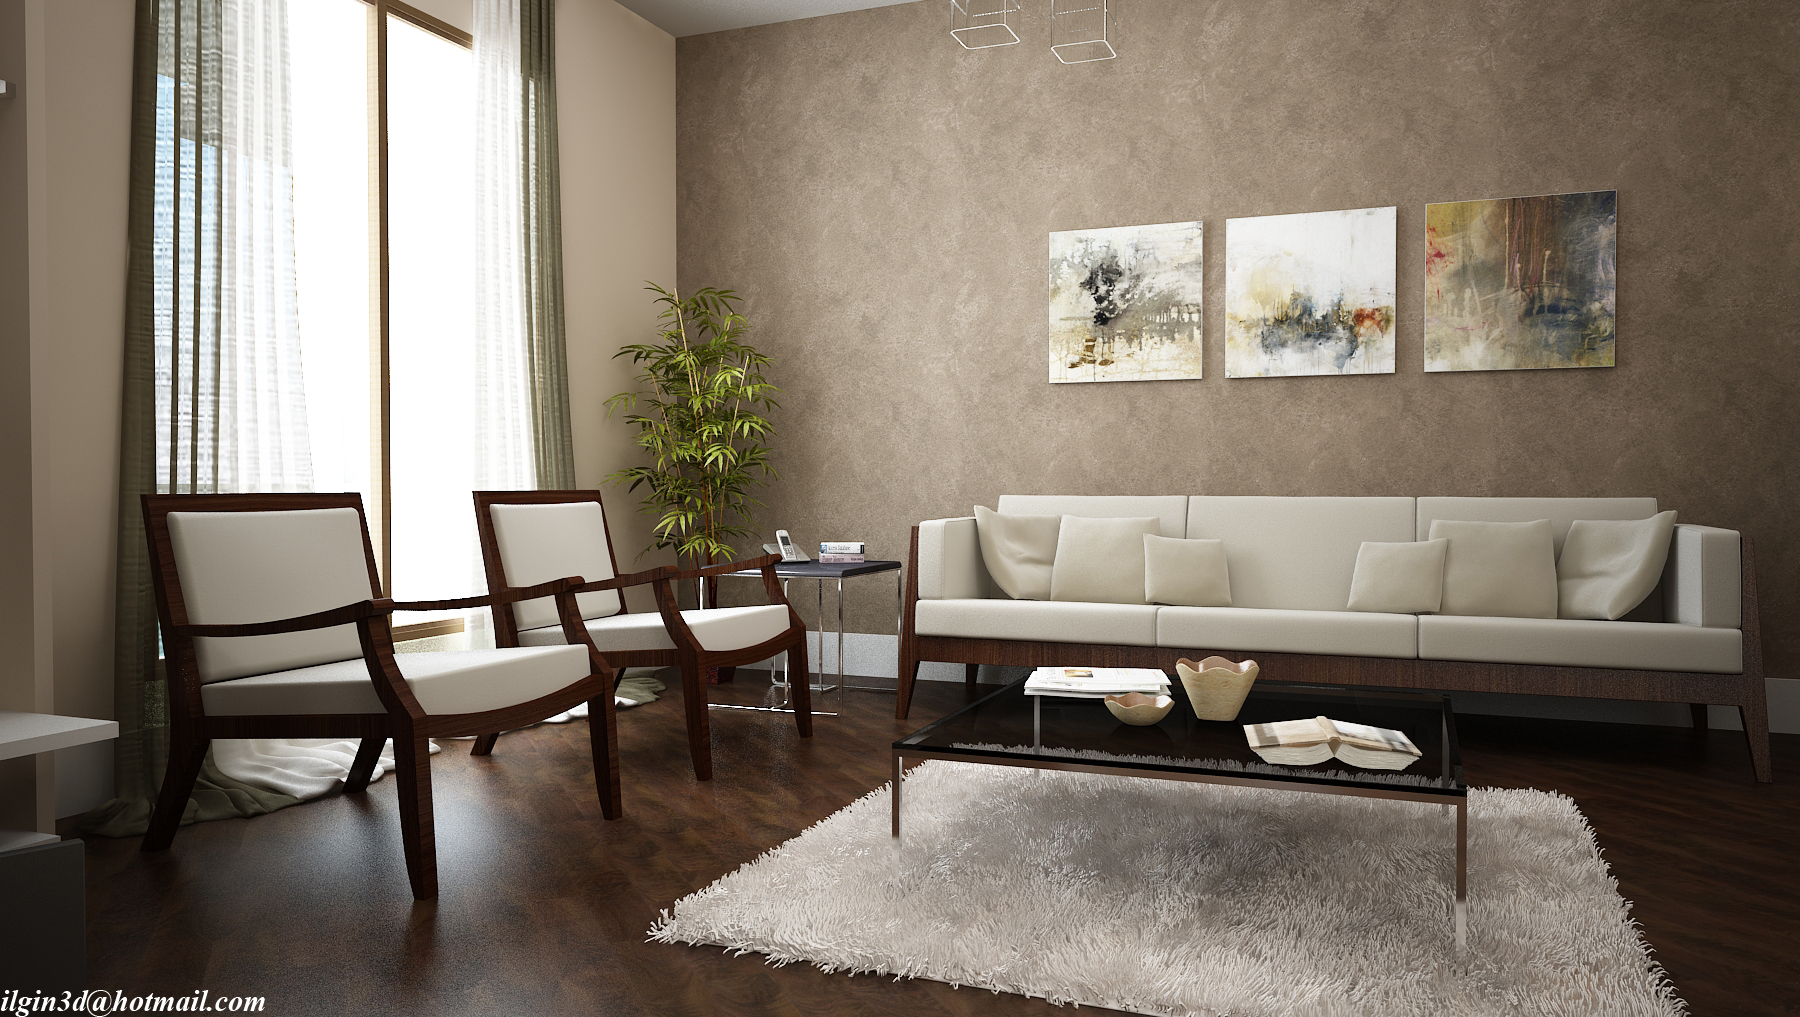 Living room by akcalar on deviantart for Modern drawing room ideas